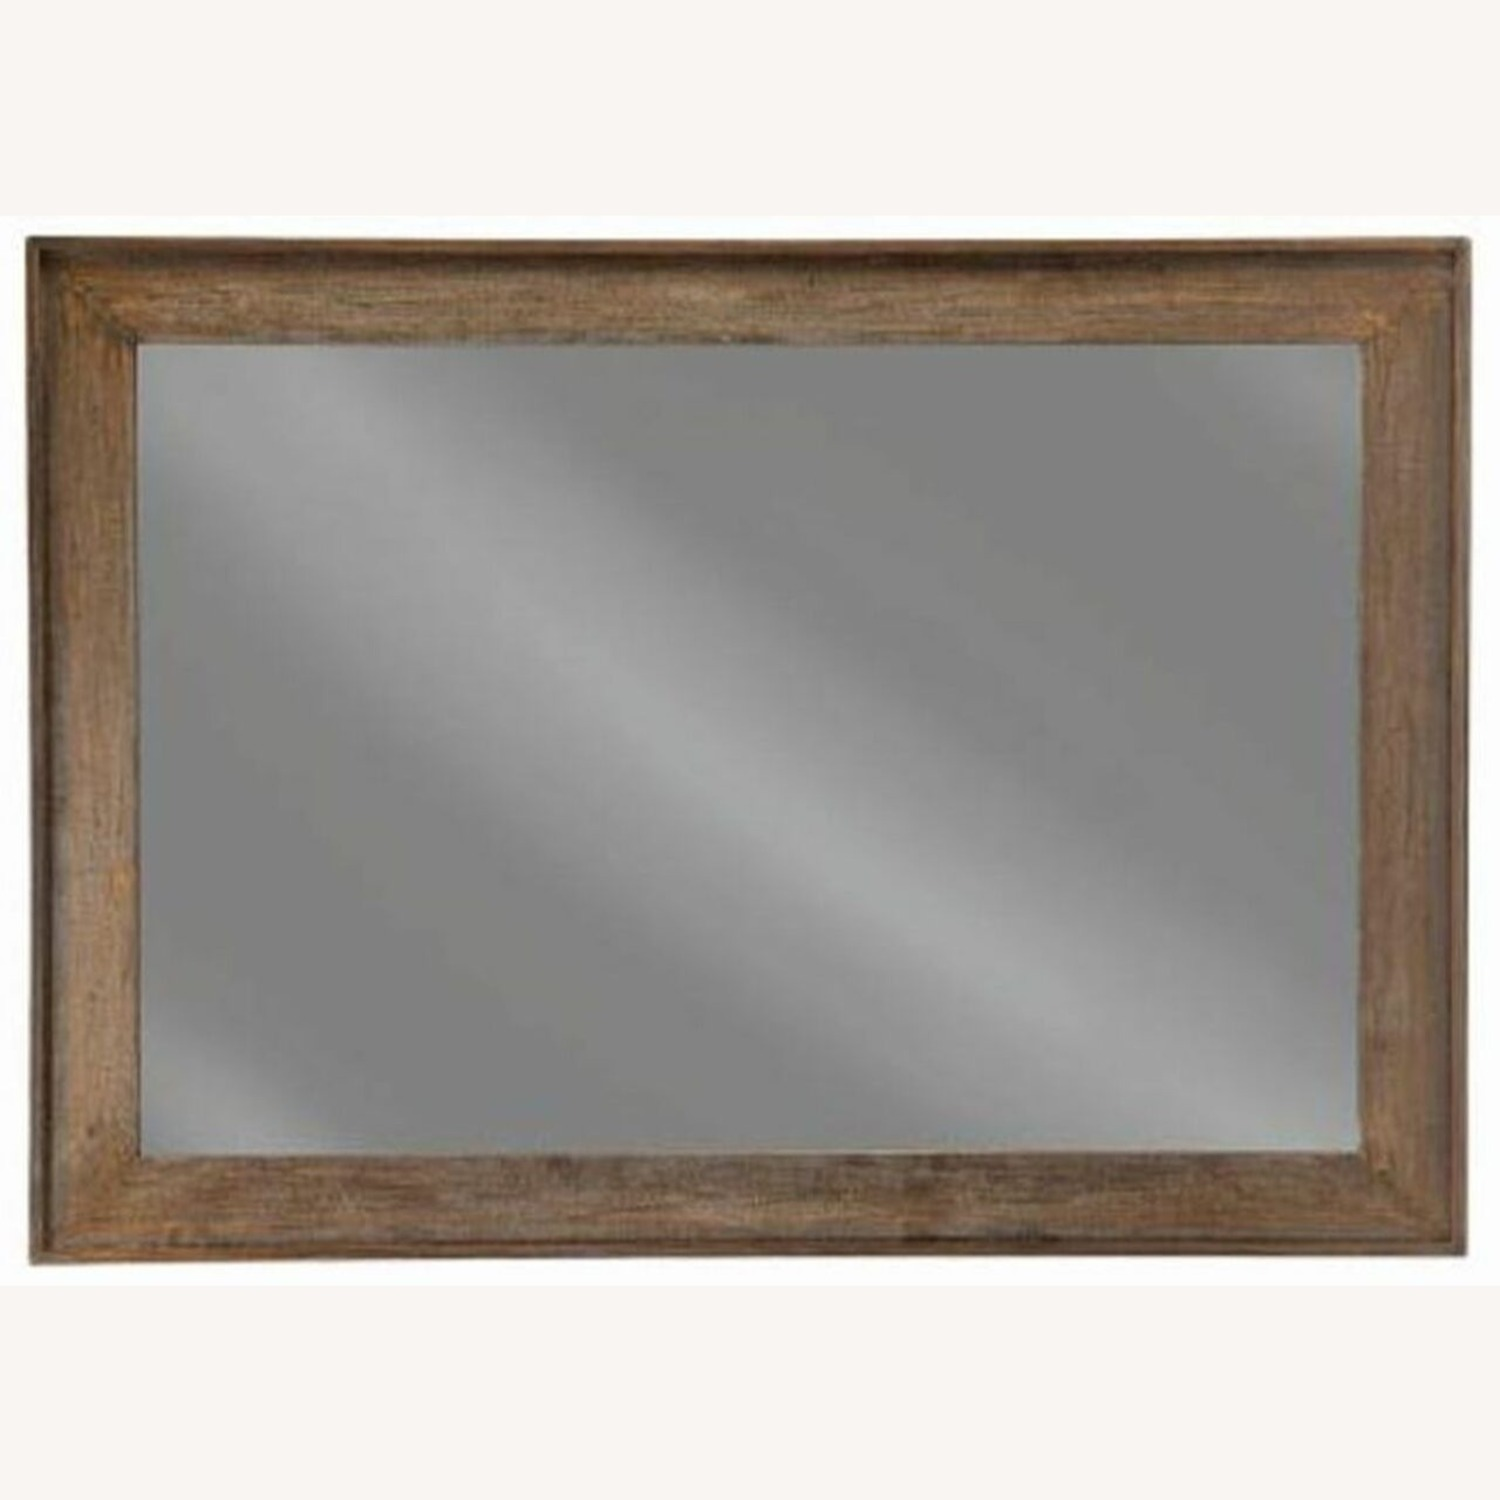 Mirror W/ Contoured Pine Frame & Distressed Look - image-1